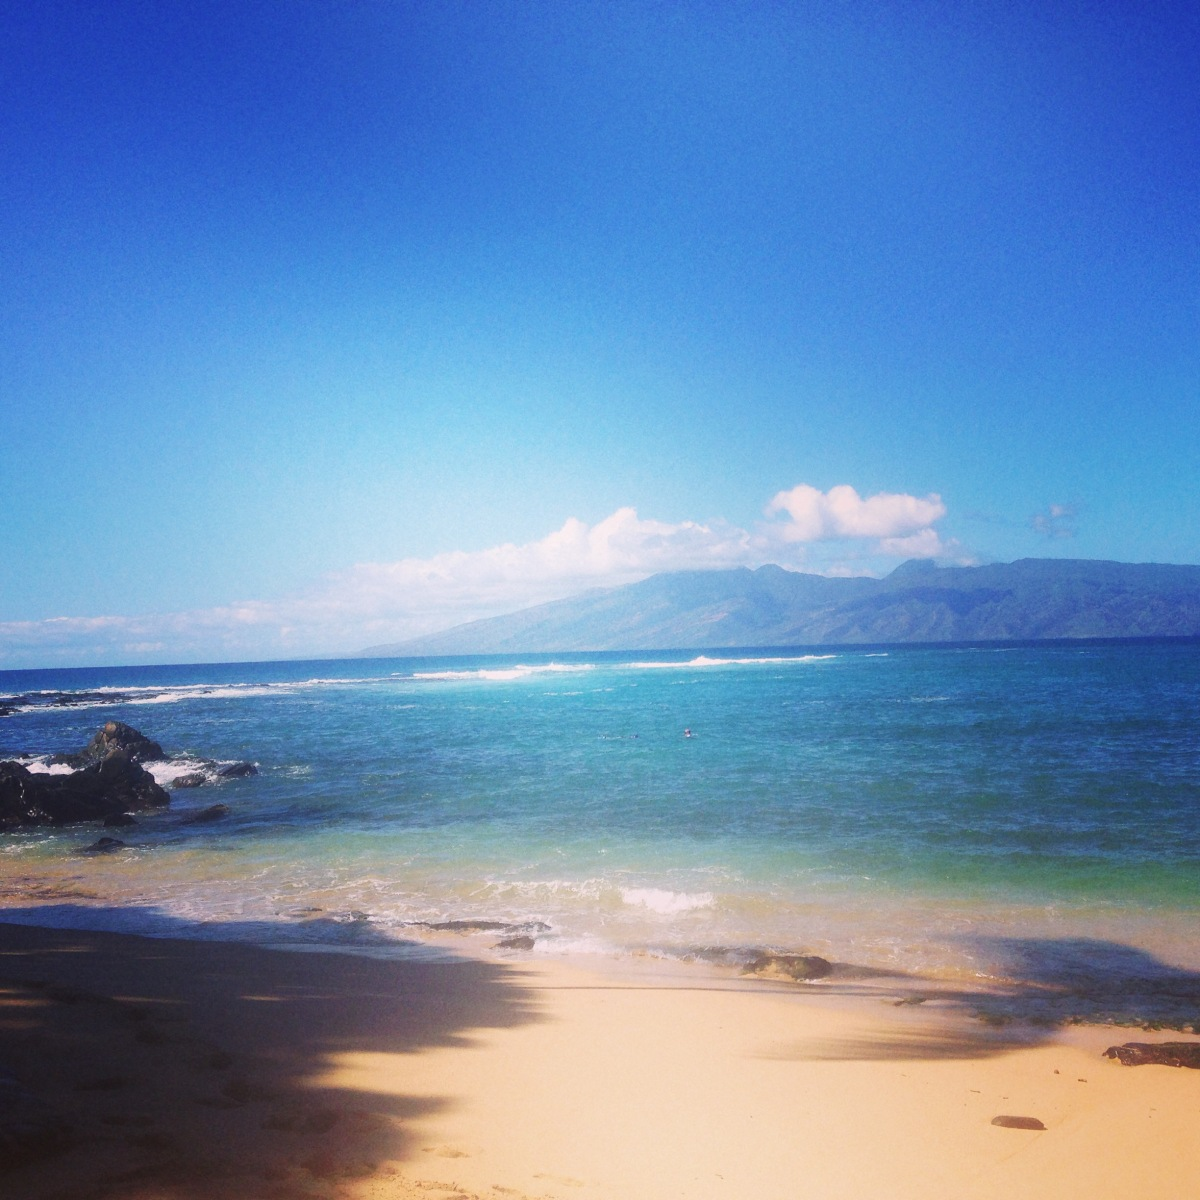 Maui Hawaii Beaches: Beach Guide: Maui, Hawaii